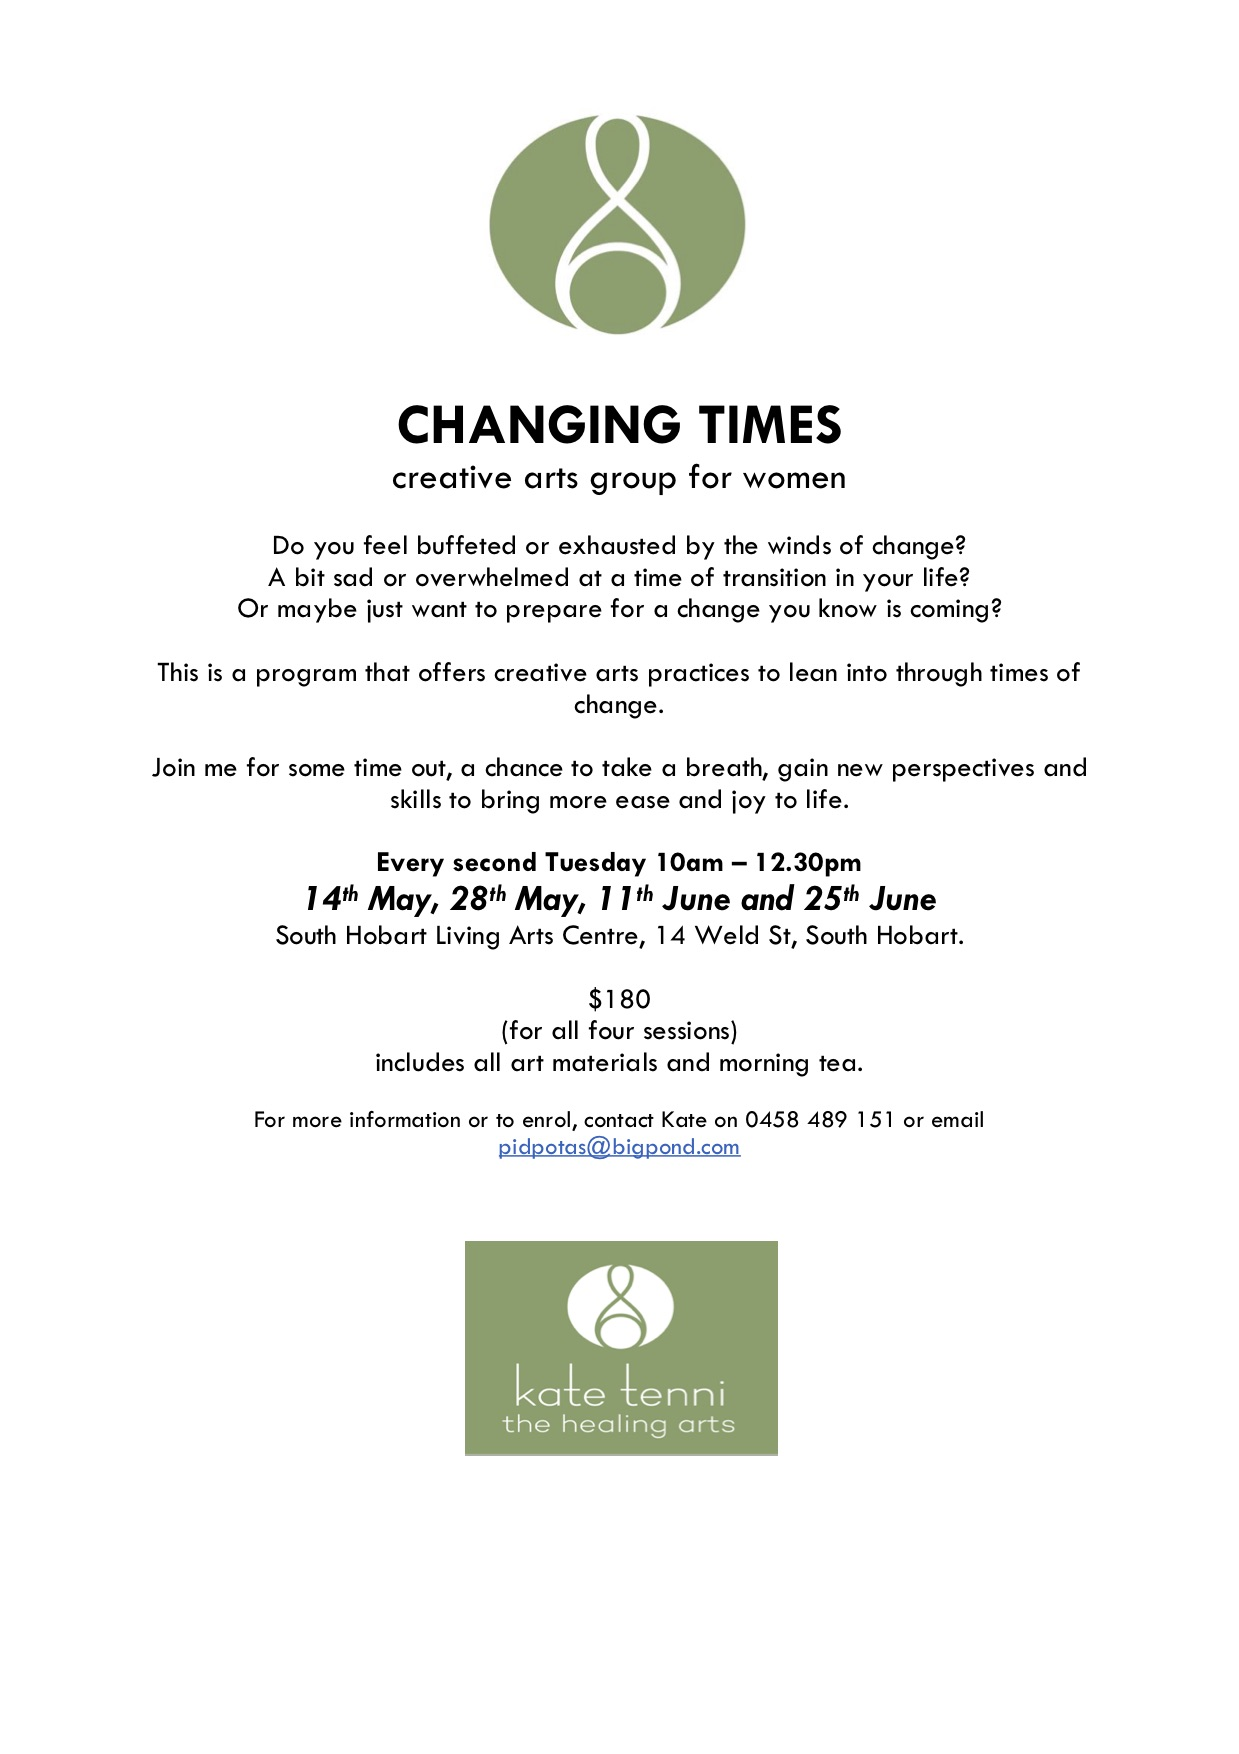 Changing Times flyer.jpg